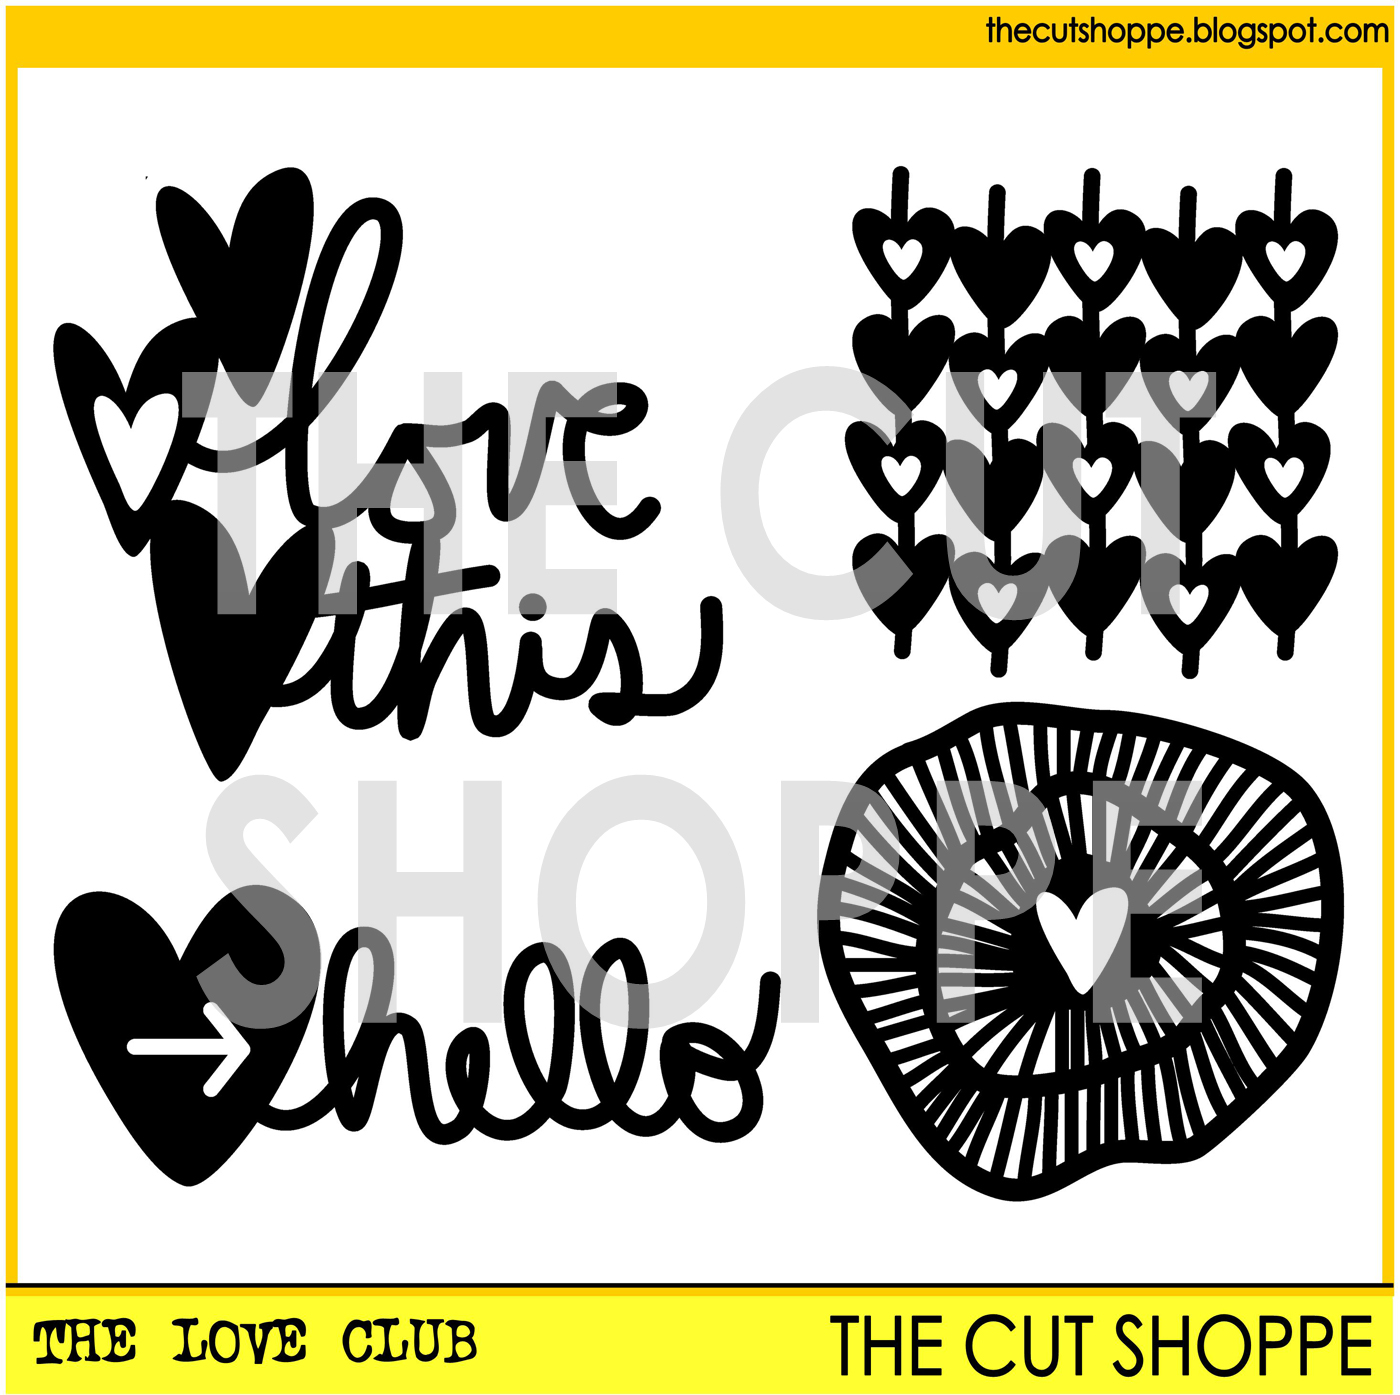 https://www.etsy.com/listing/222281822/the-love-club-cut-file-consists-of-4?ref=shop_home_active_1